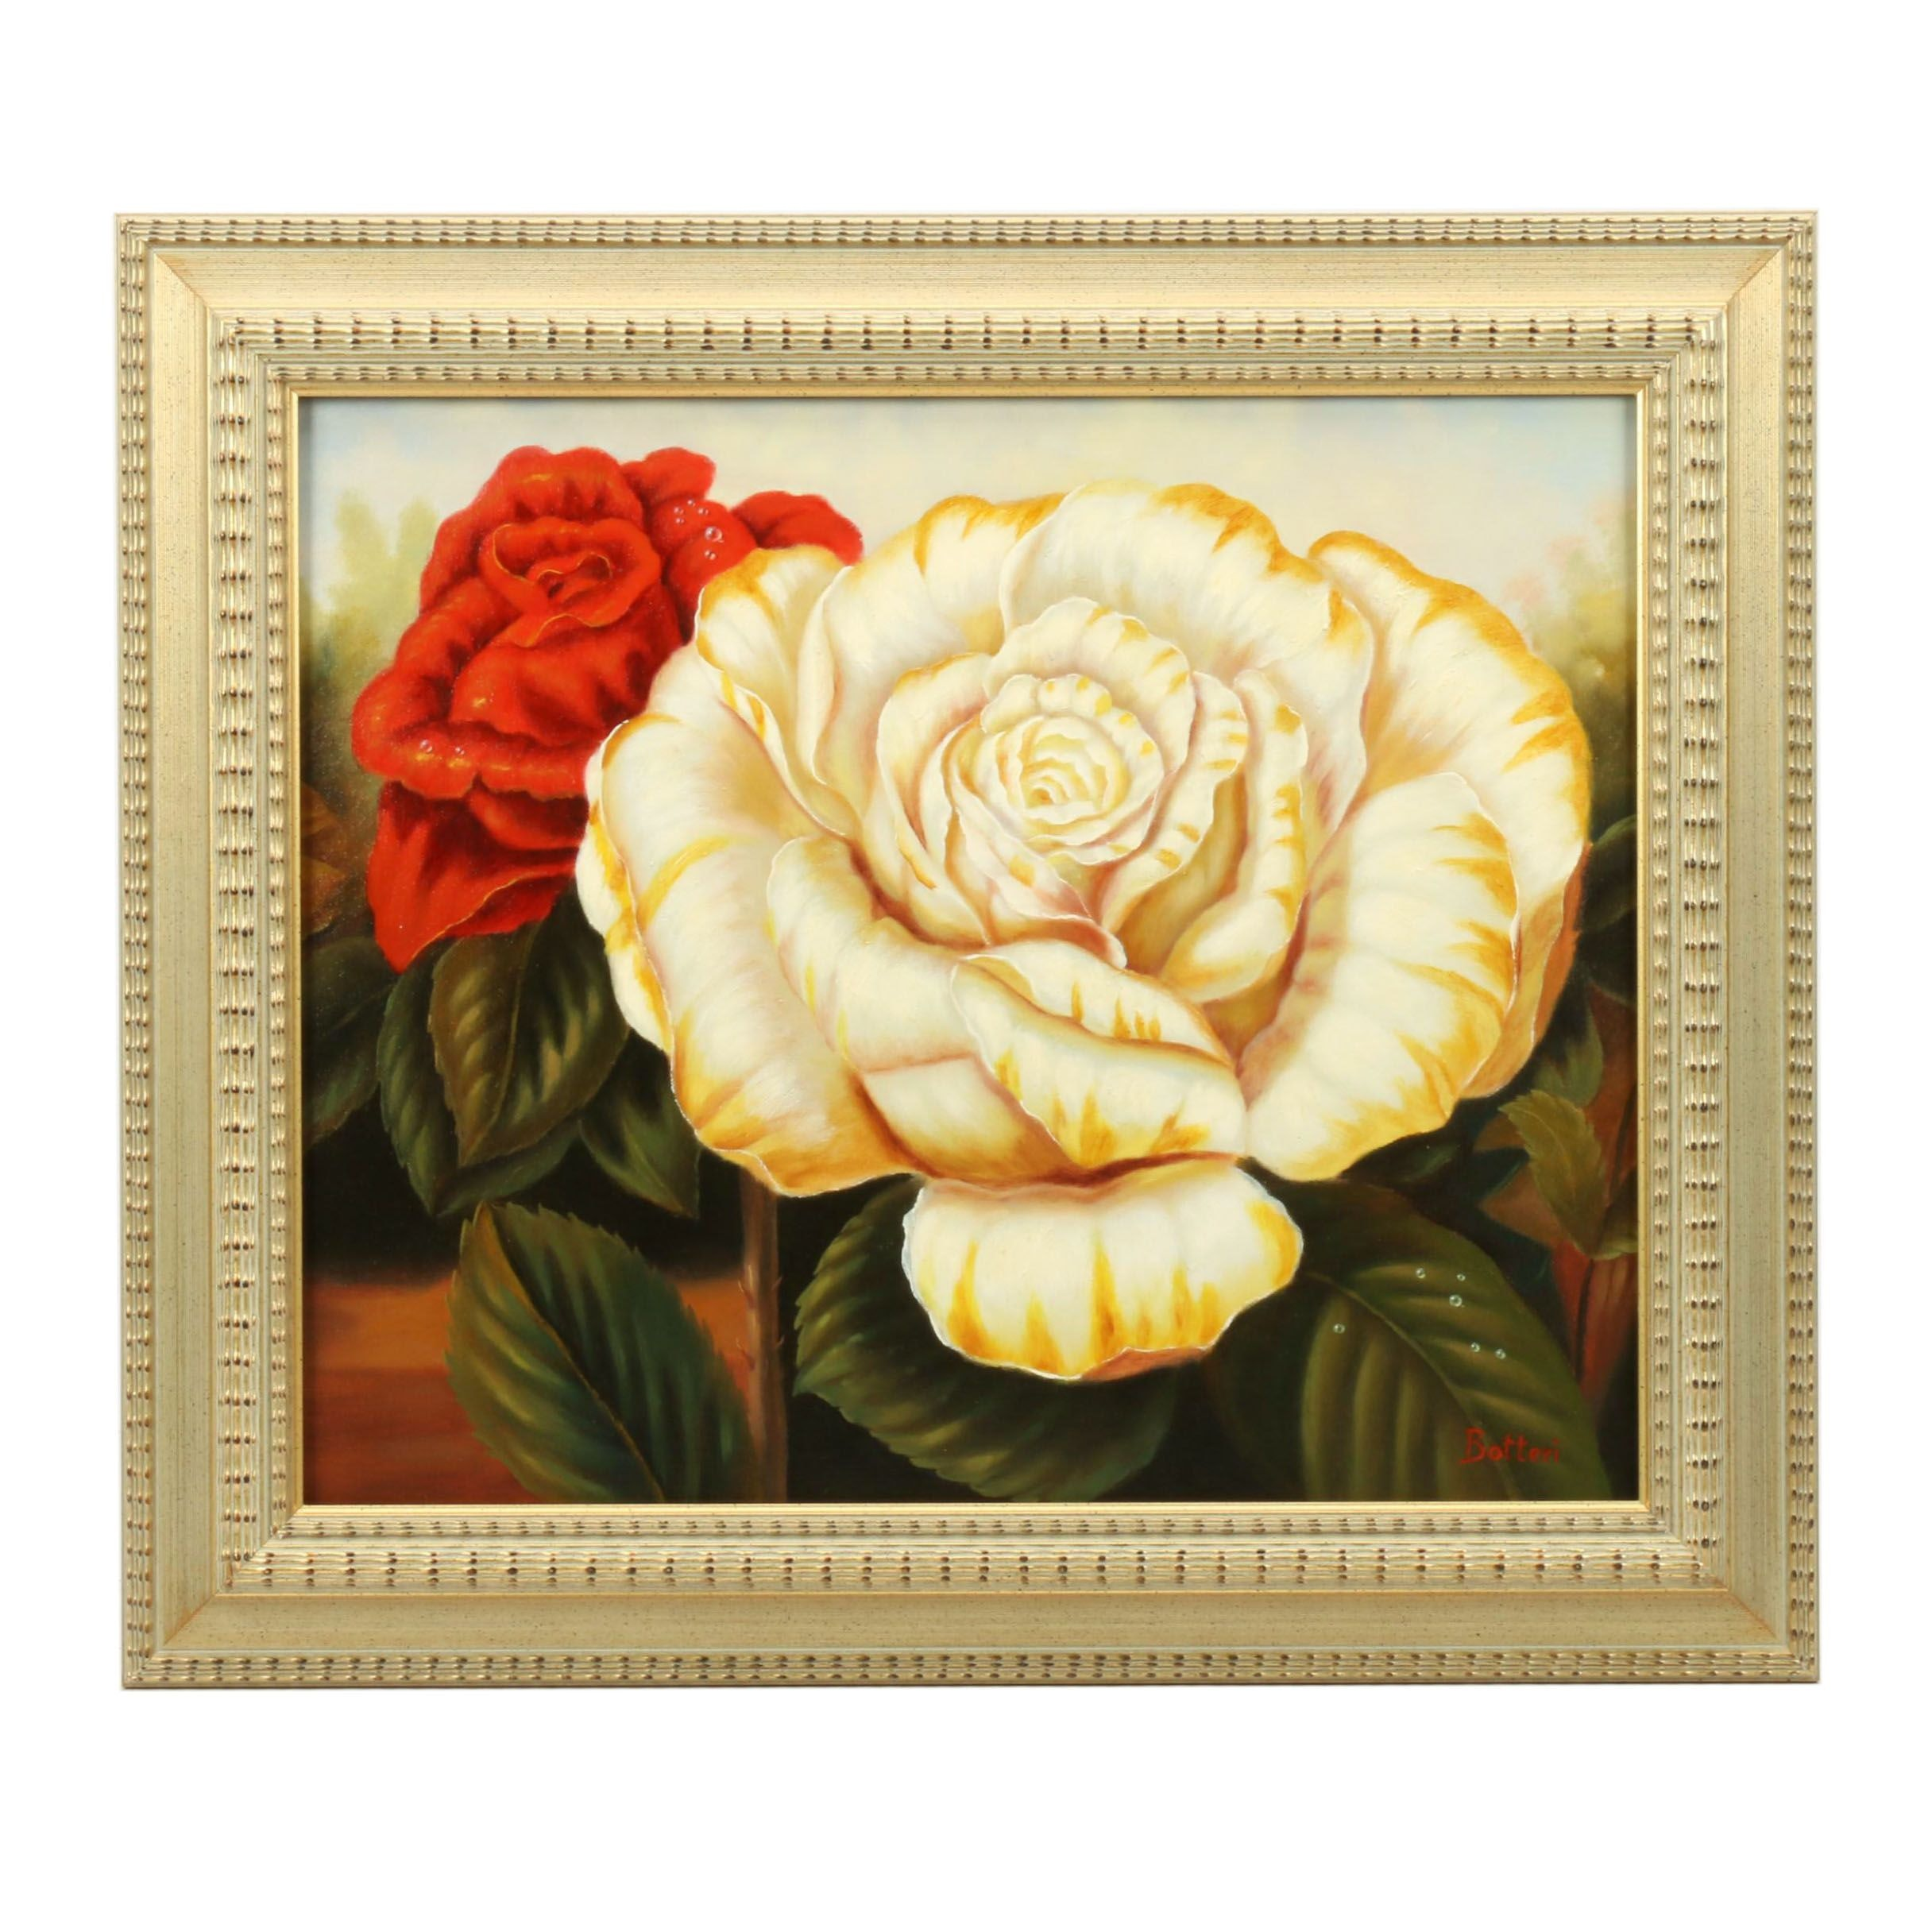 Botteri Oil Painting of a Floral Still Life